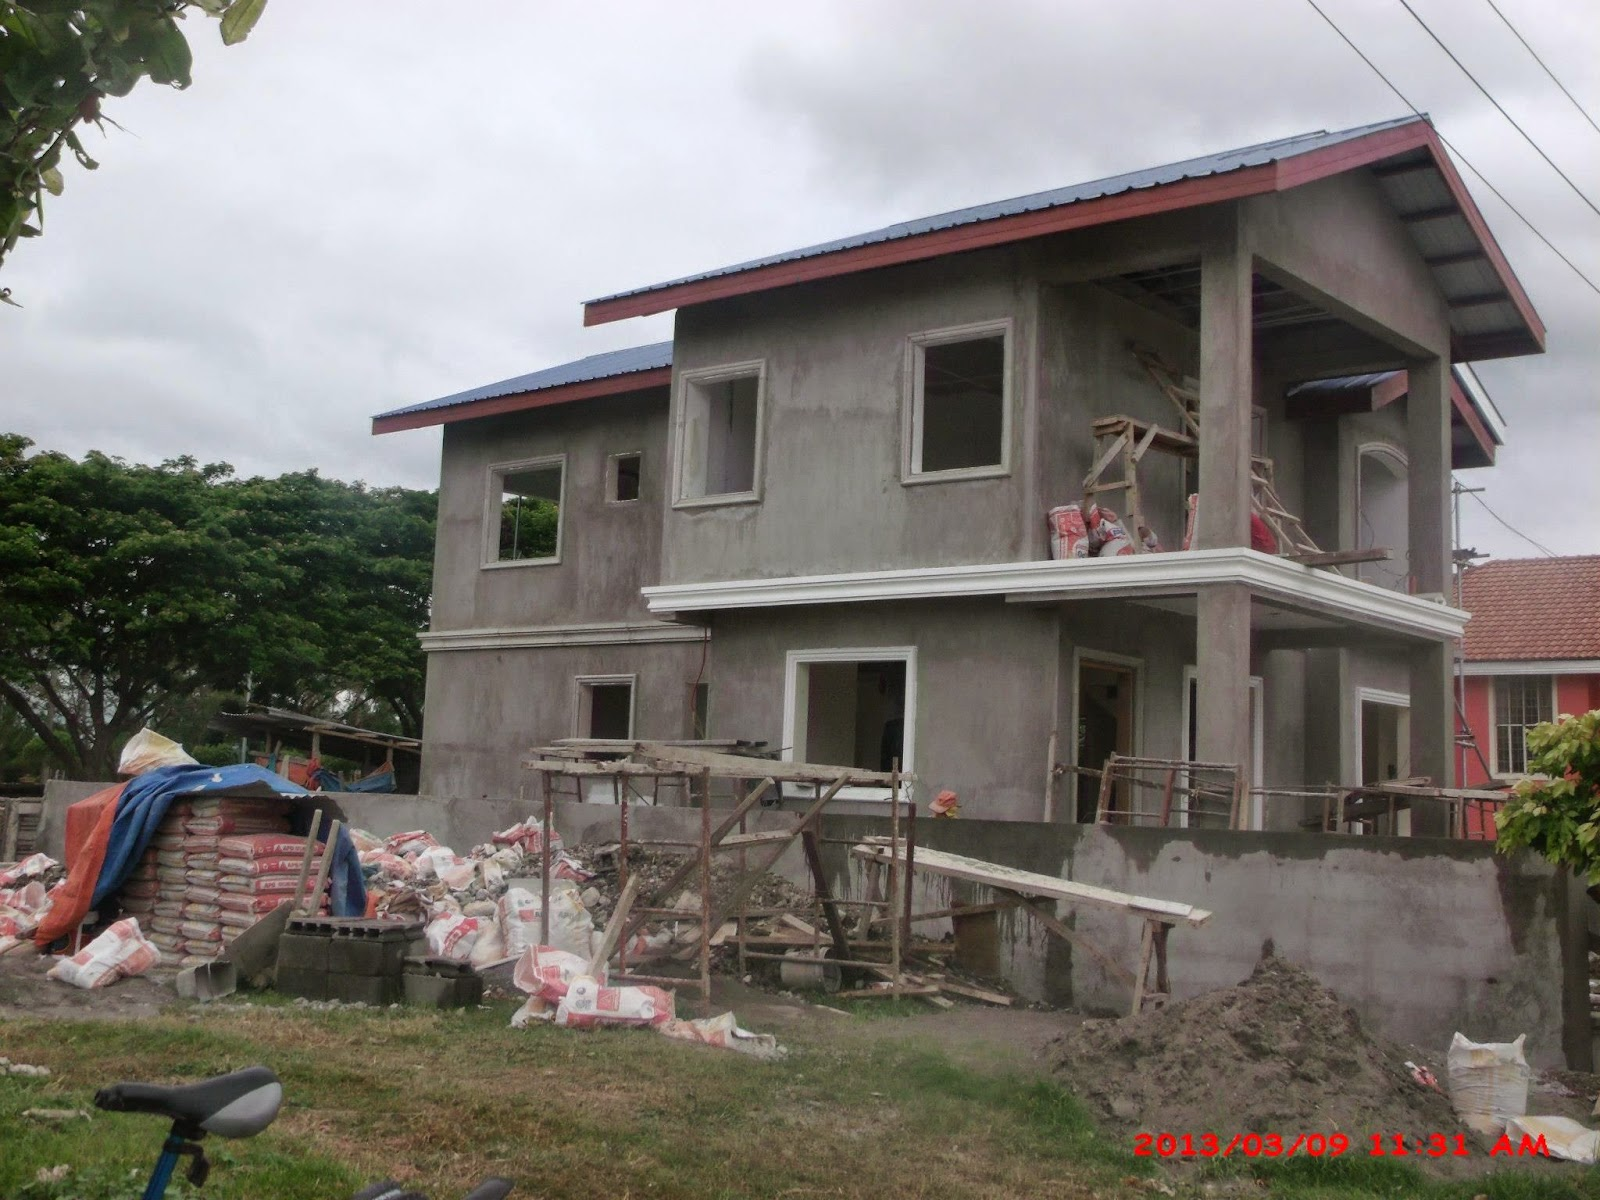 Bungalow Houses In The Philippines Design Part - 50: House Design For Bungalow In Philippines